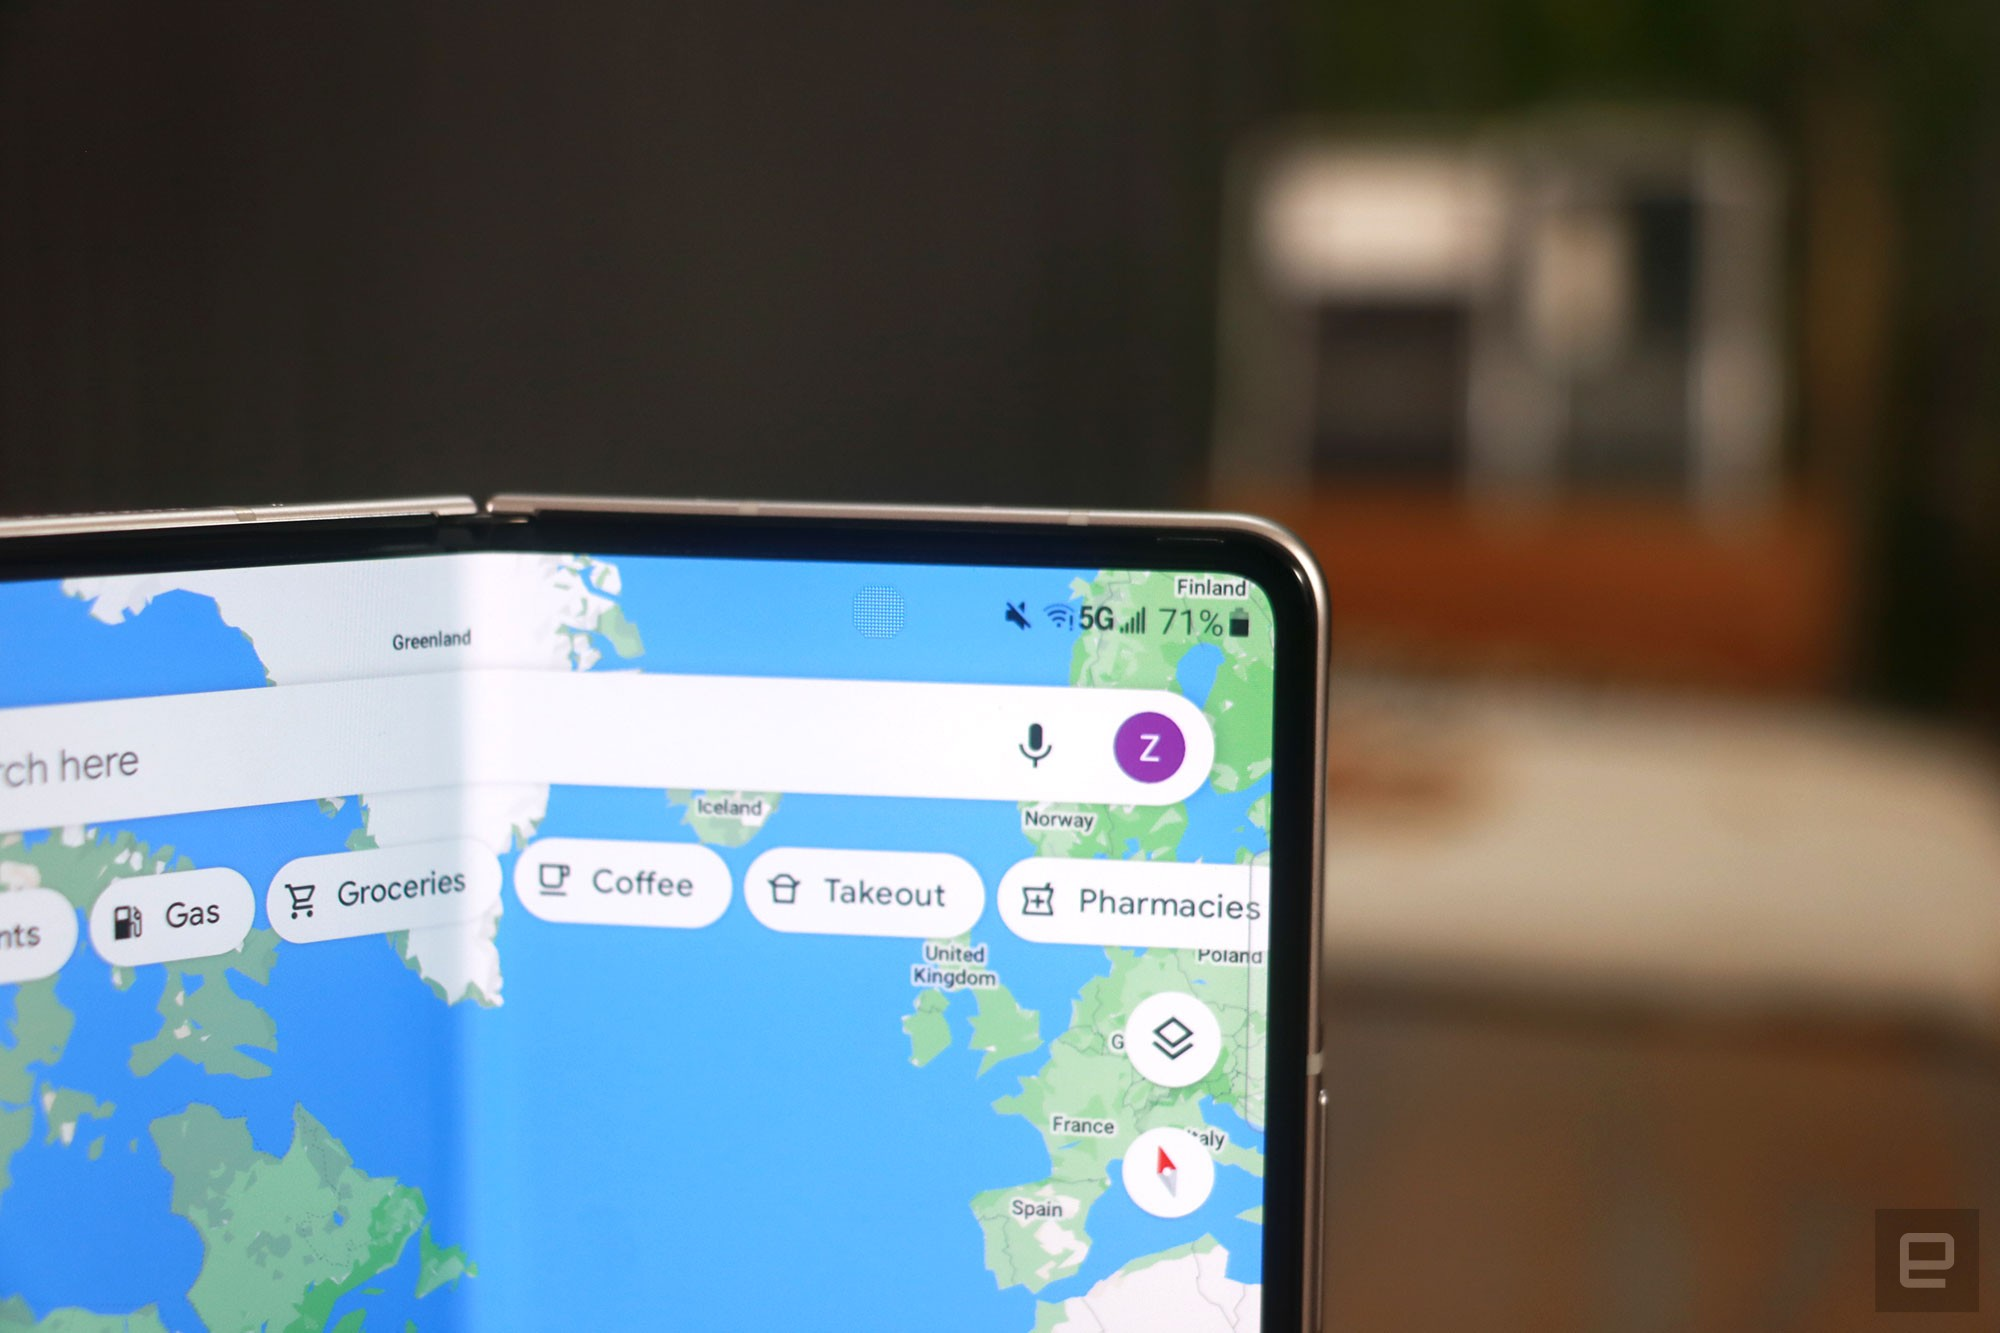 Galaxy Z Fold 3 close up on the under display camera with Google Maps open onscreen.